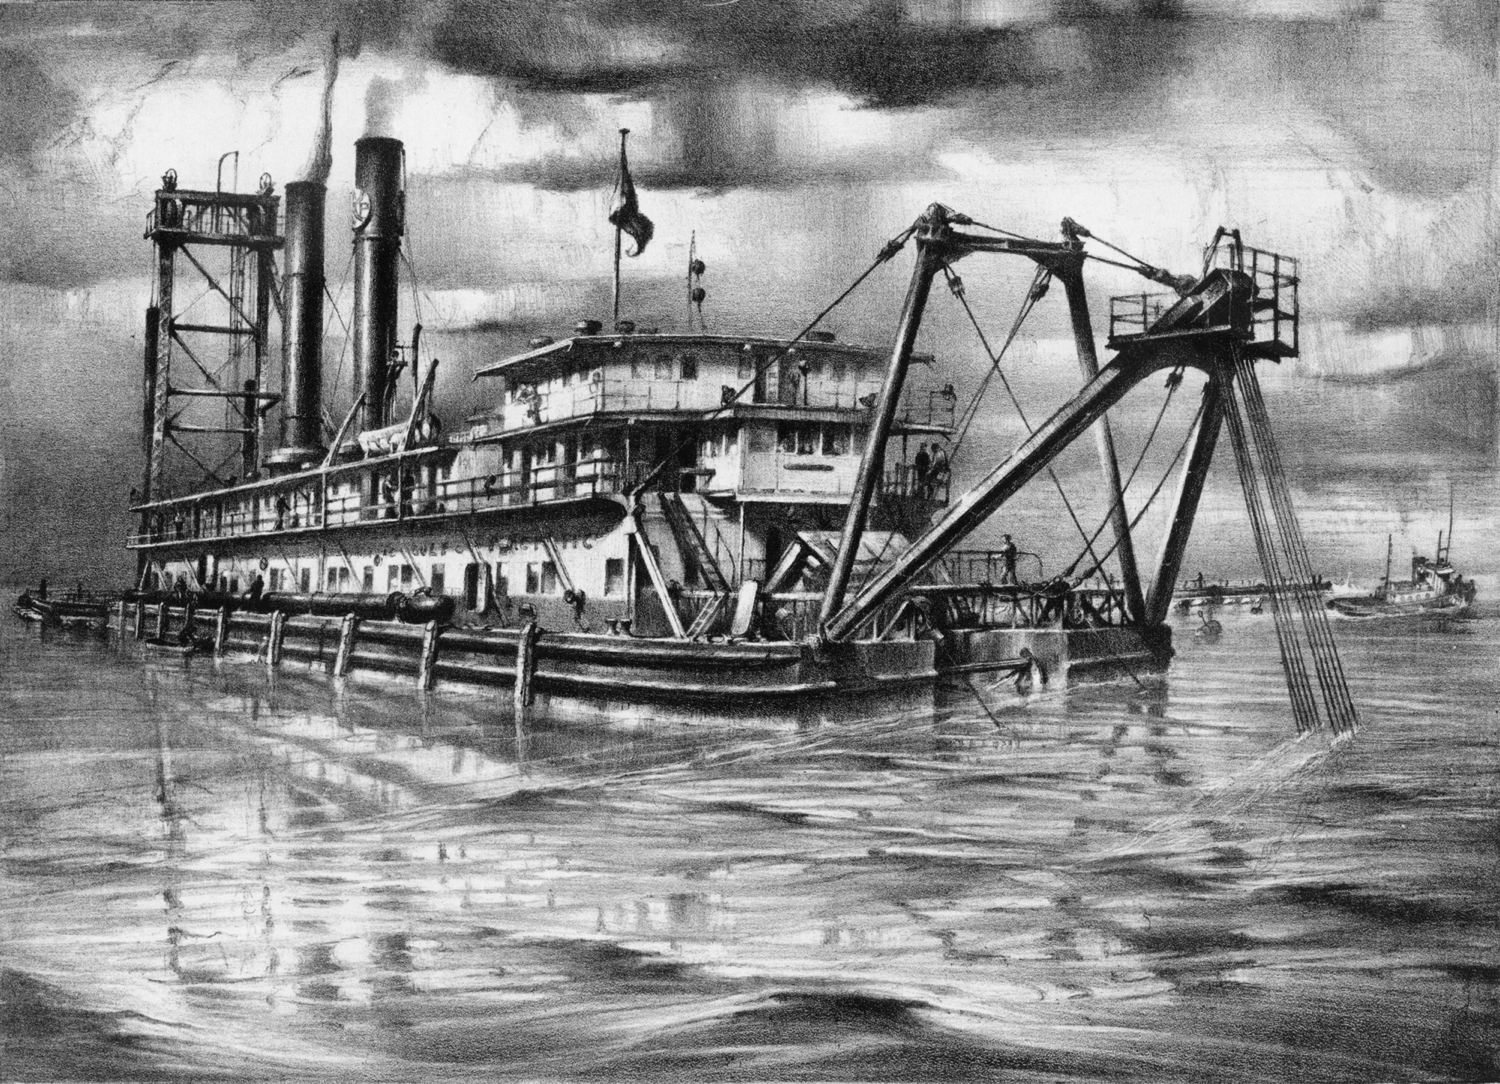 """41. John A. Noble (1913-83), """"The Barlow, also known as The Great Hydraulic Dredge"""""""